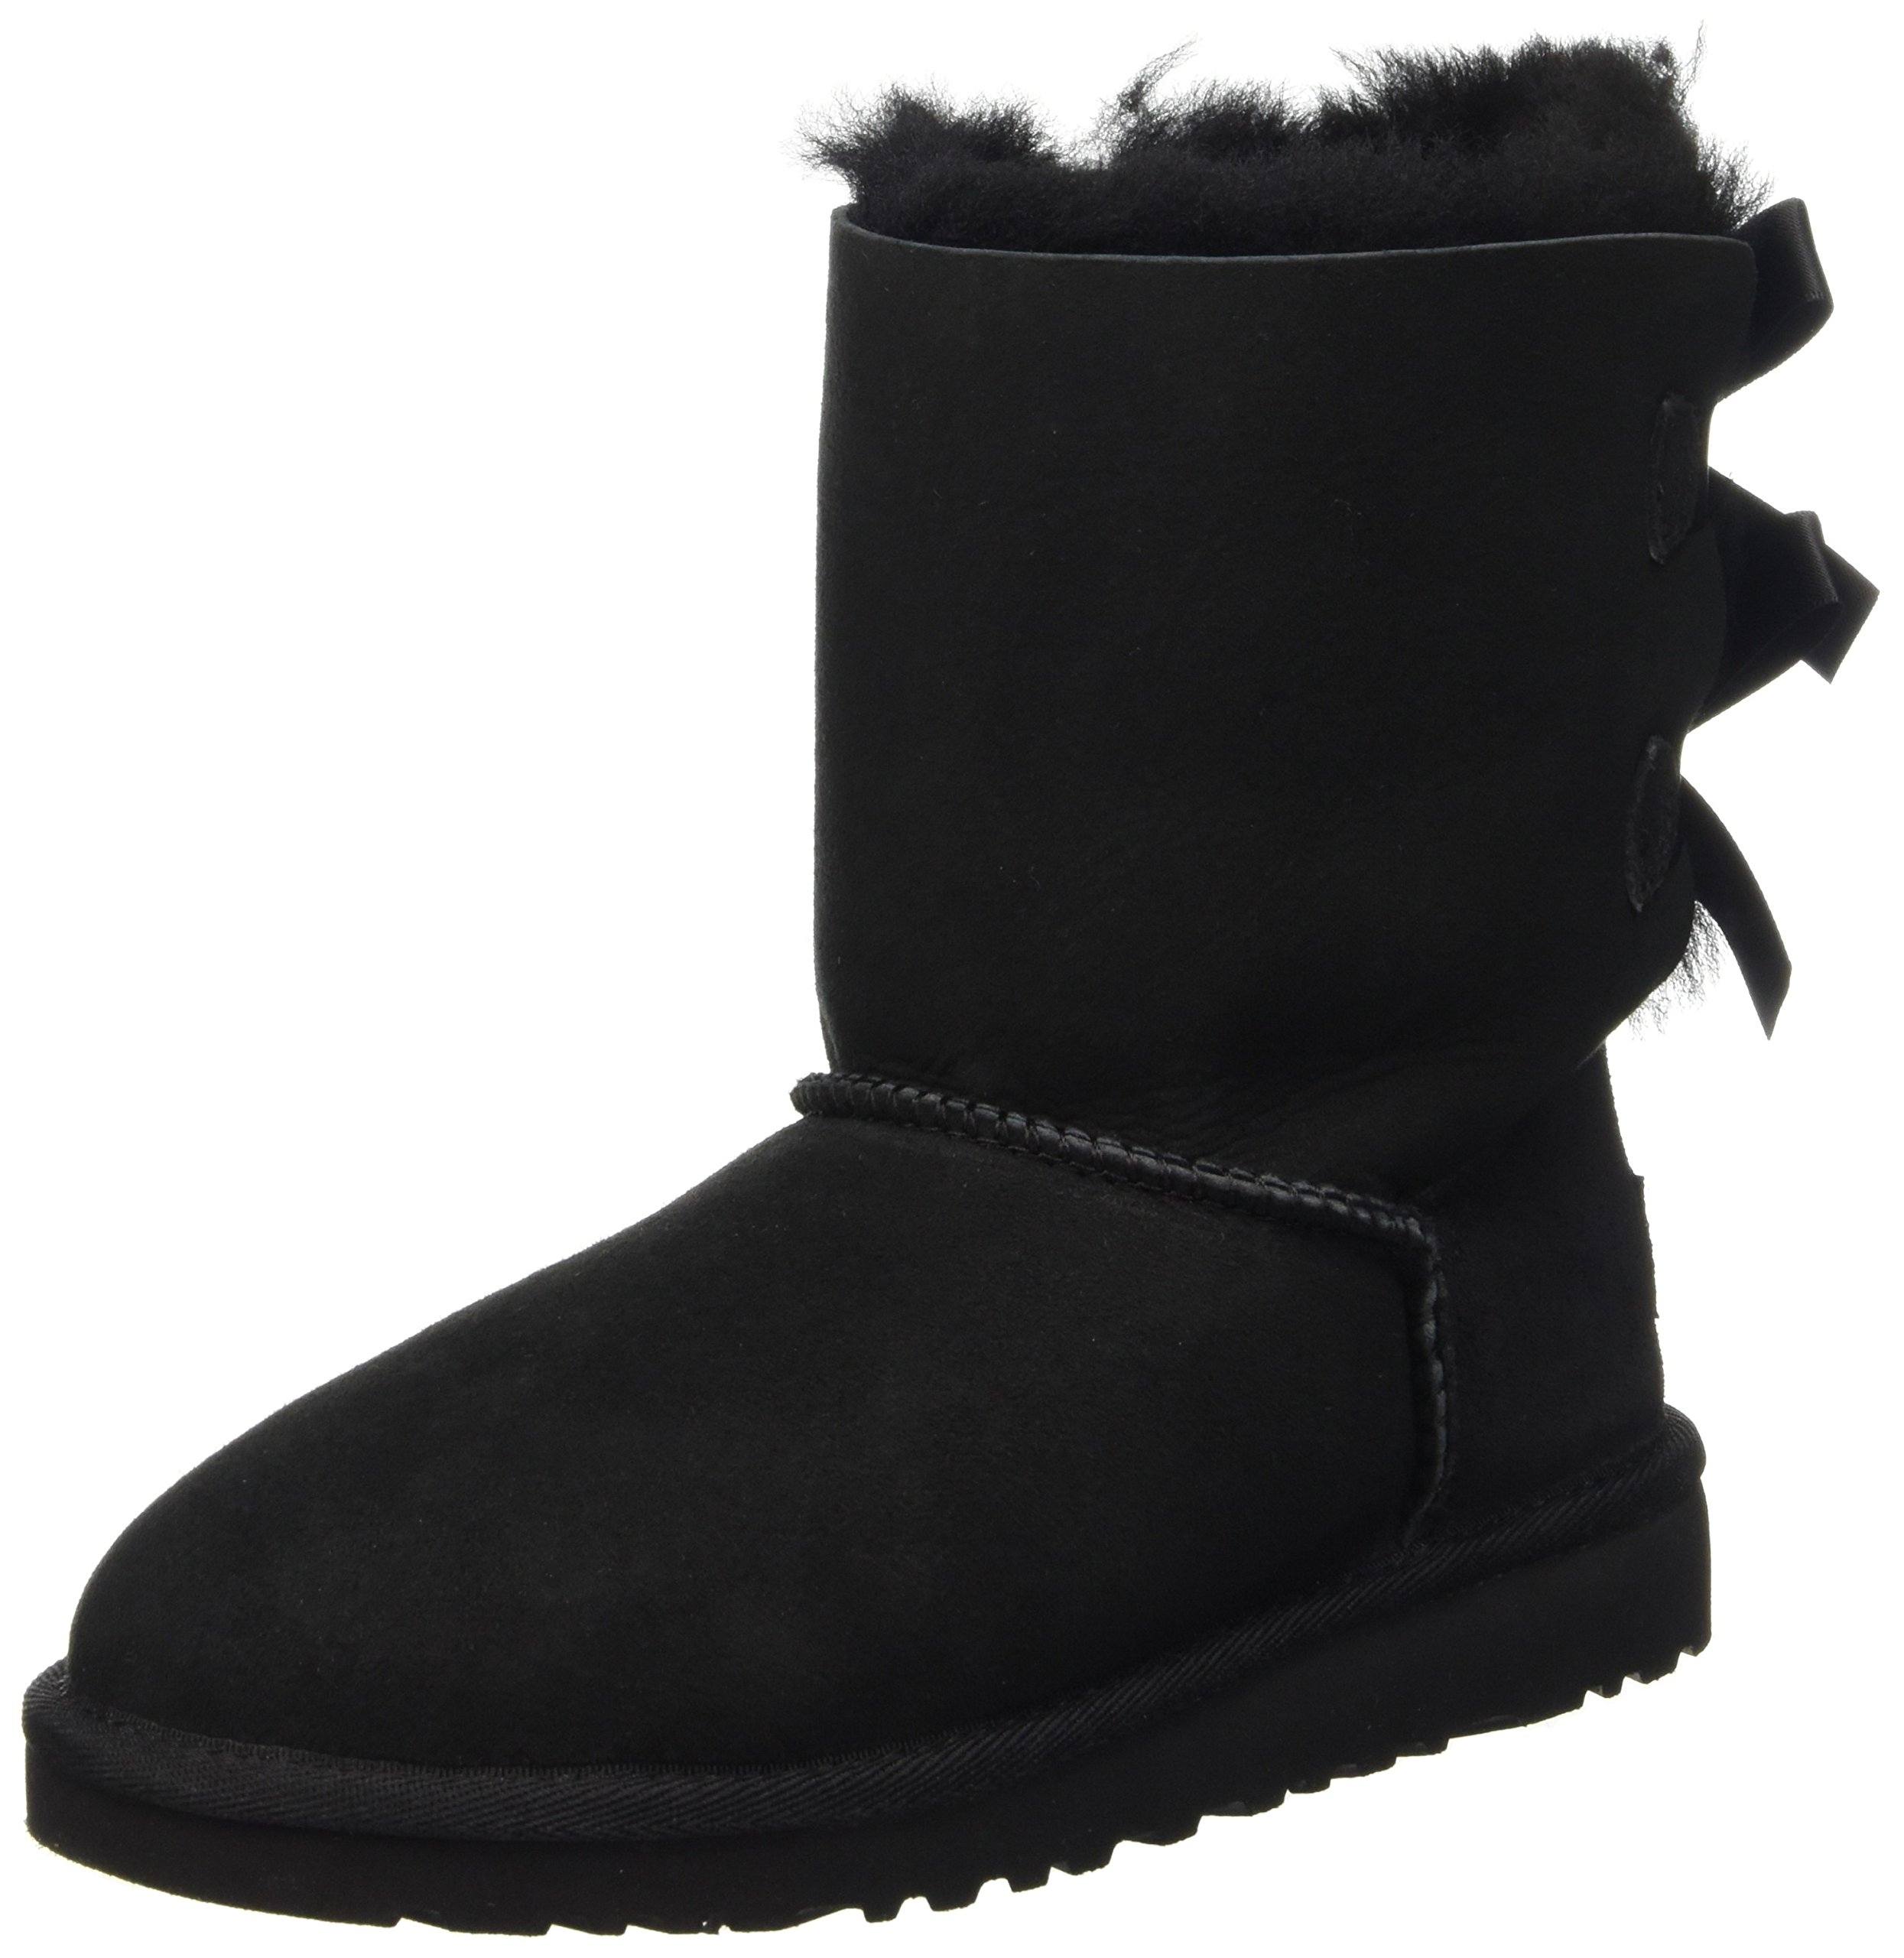 UGG Kids Bailey Bow Girls Shoes - Black size 13